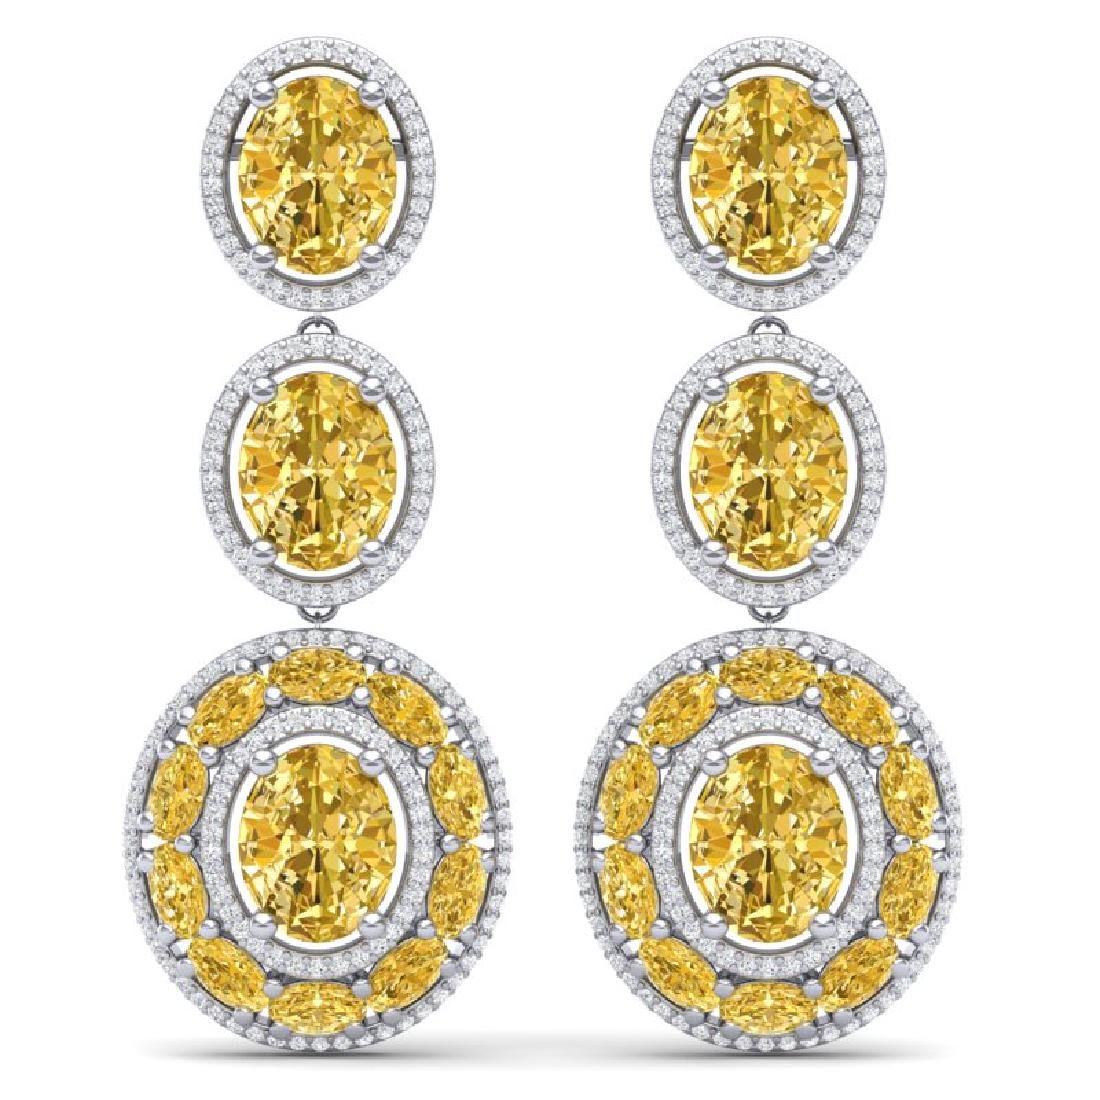 29.71 CTW Royalty Canary Citrine & VS Diamond Earrings